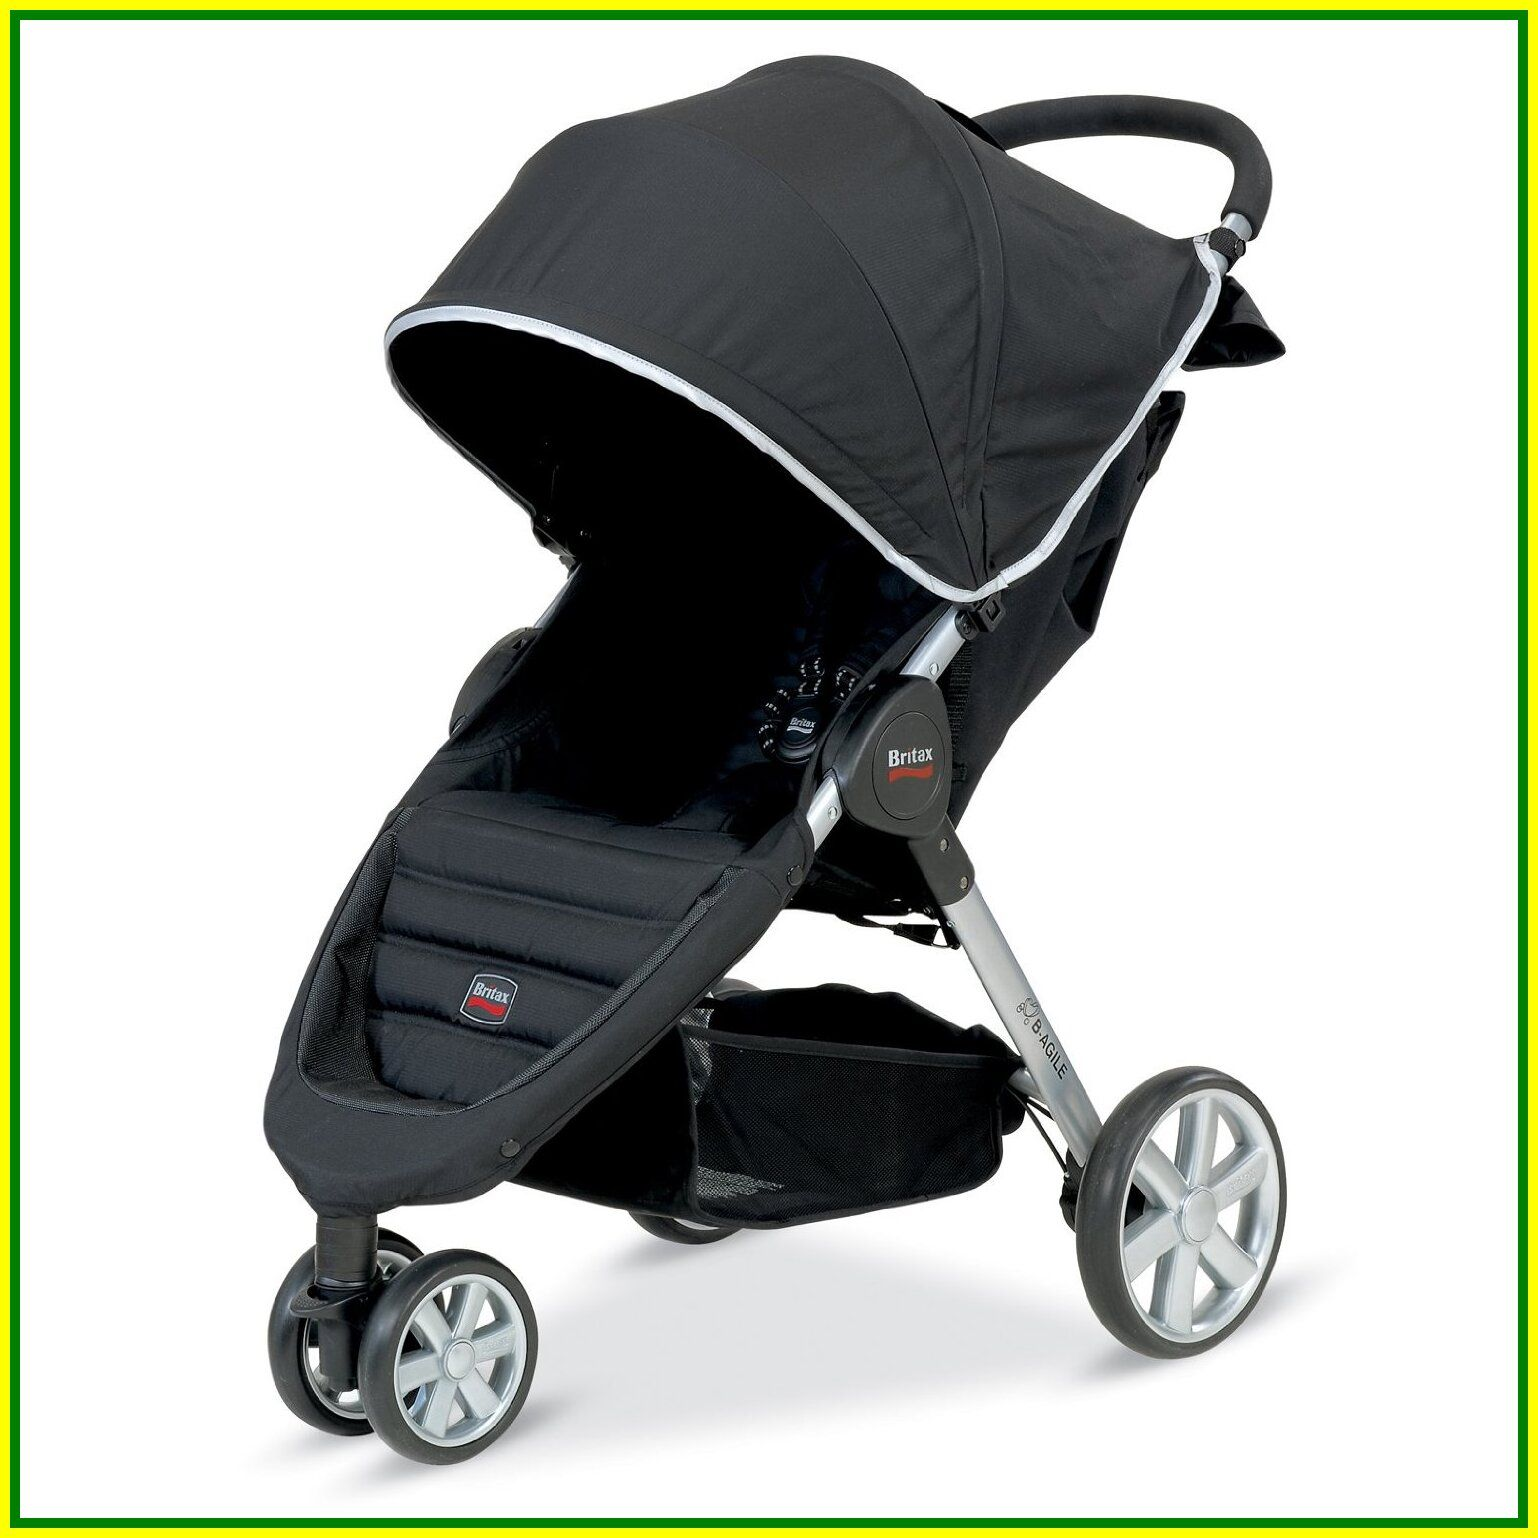 73 reference of stroller Britax b lively in 2020 Britax